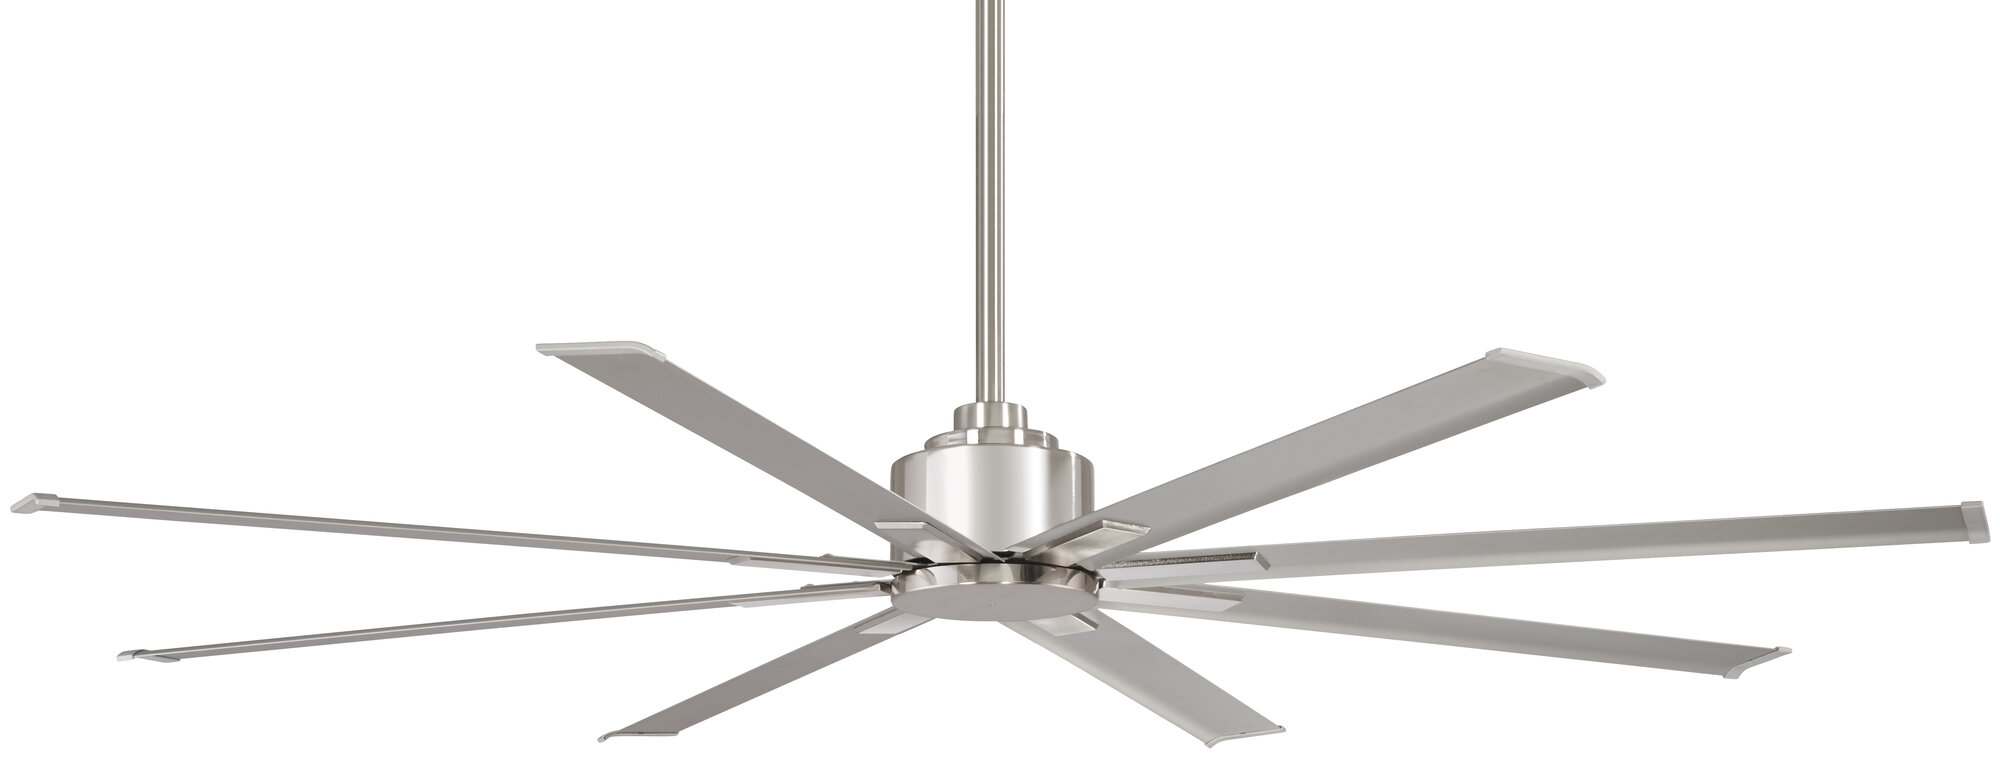 Minka aire 65 xtreme 8 blade outdoor ceiling fan with remote ebay minka aire 65 034 xtreme 8 blade outdoor aloadofball Gallery